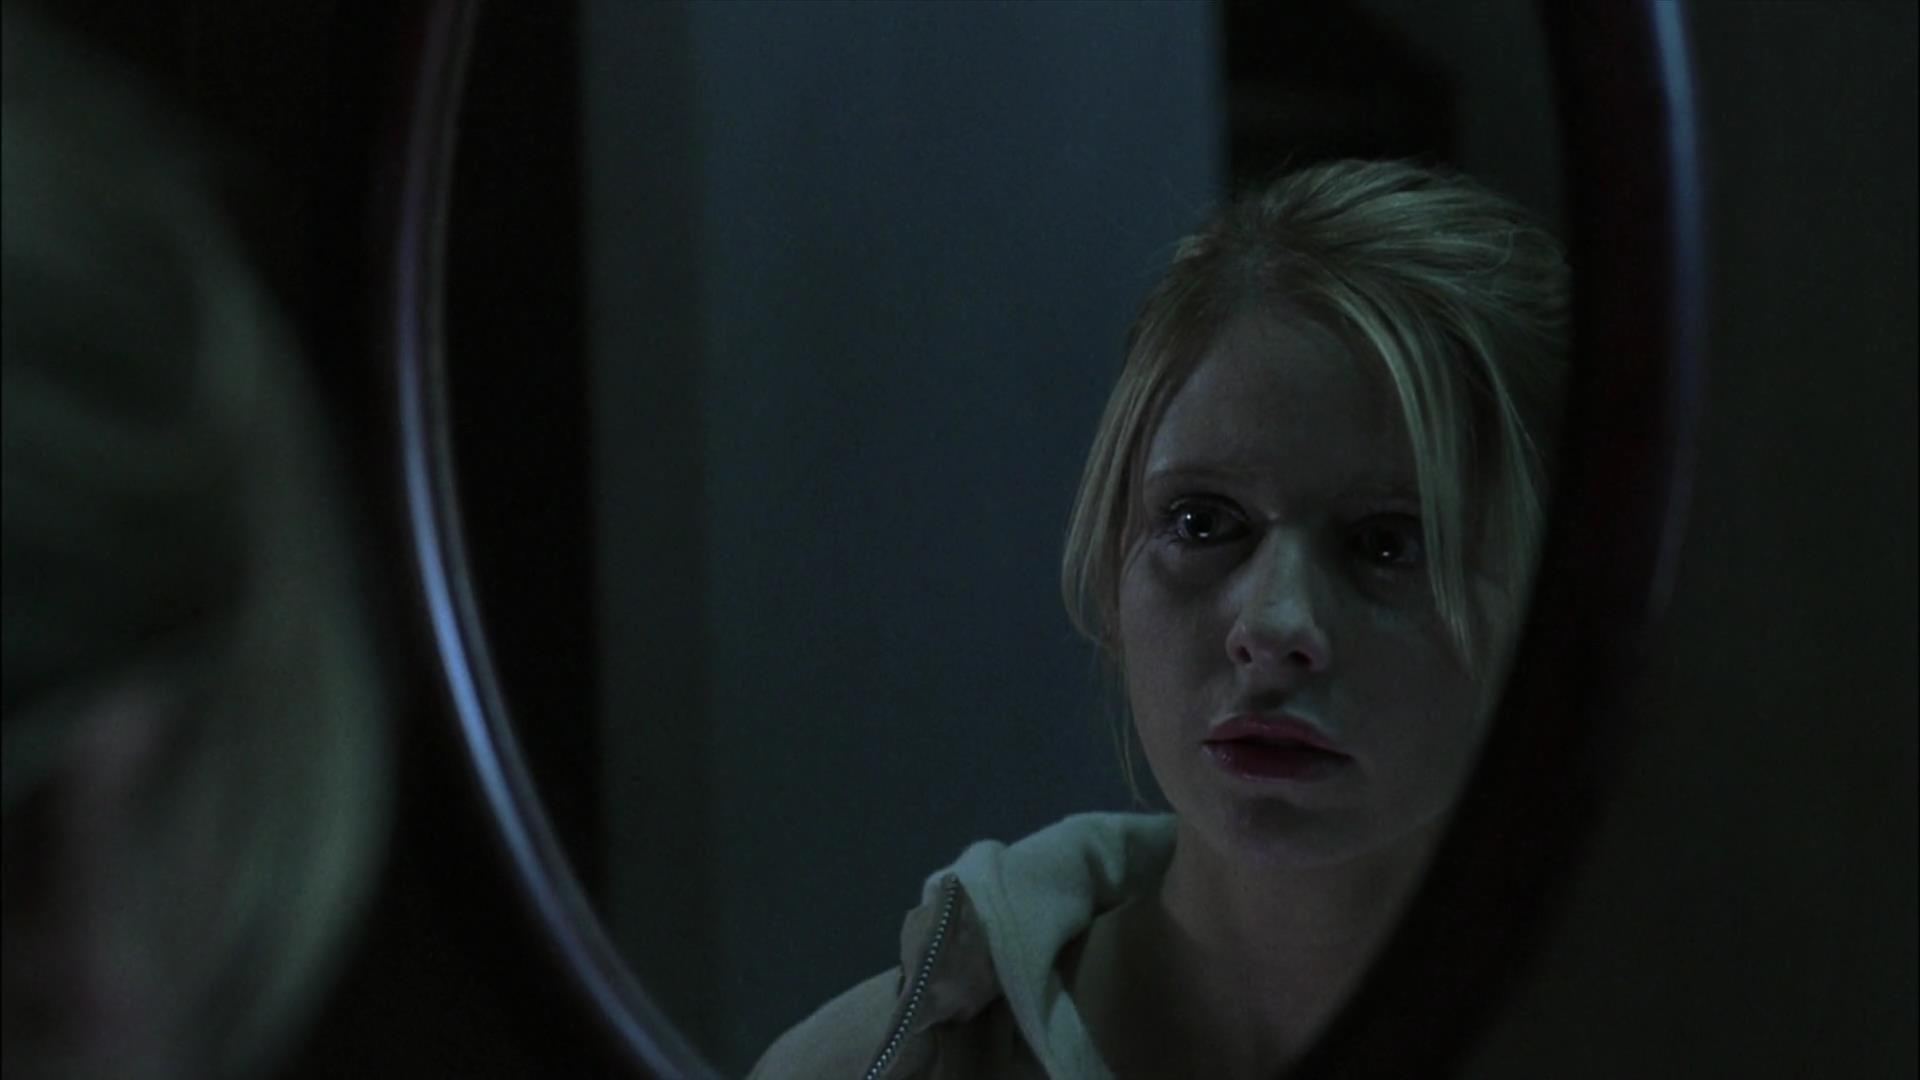 Sarah Michelle Gellar In The Grudge 2004 Horror Actresses Photo 43438315 Fanpop